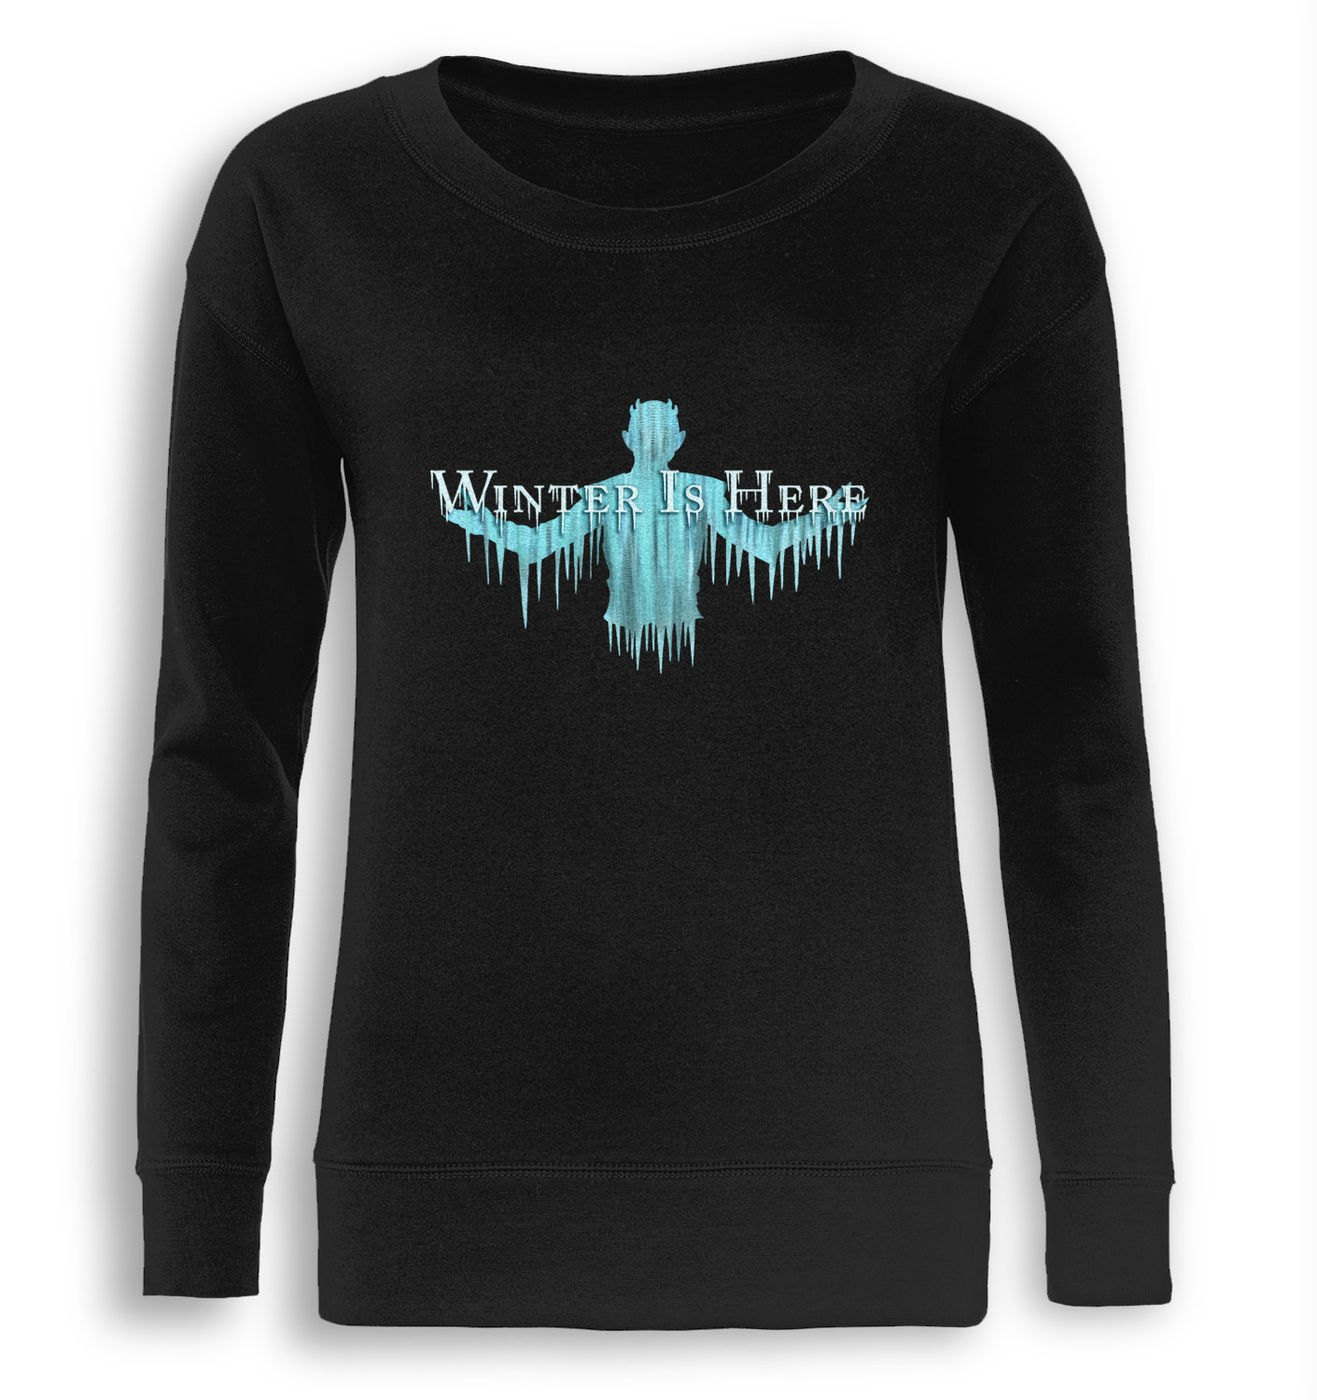 Winter Is Here fitted womens sweatshirt by Something Geeky